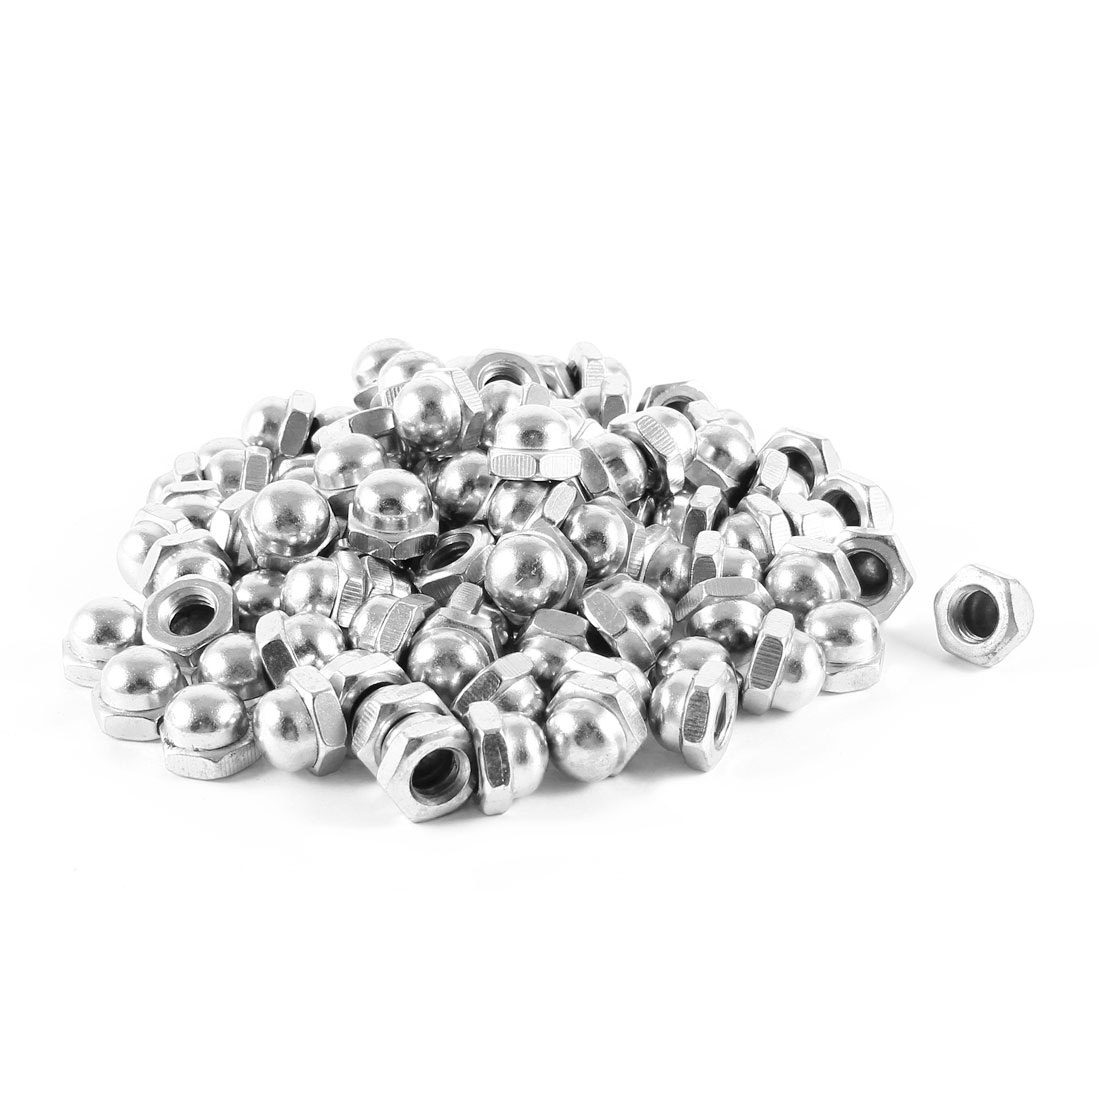 100 Pcs Nickle Plated Dome Head Acorn Cap Capped Hex Nut M8 8mm